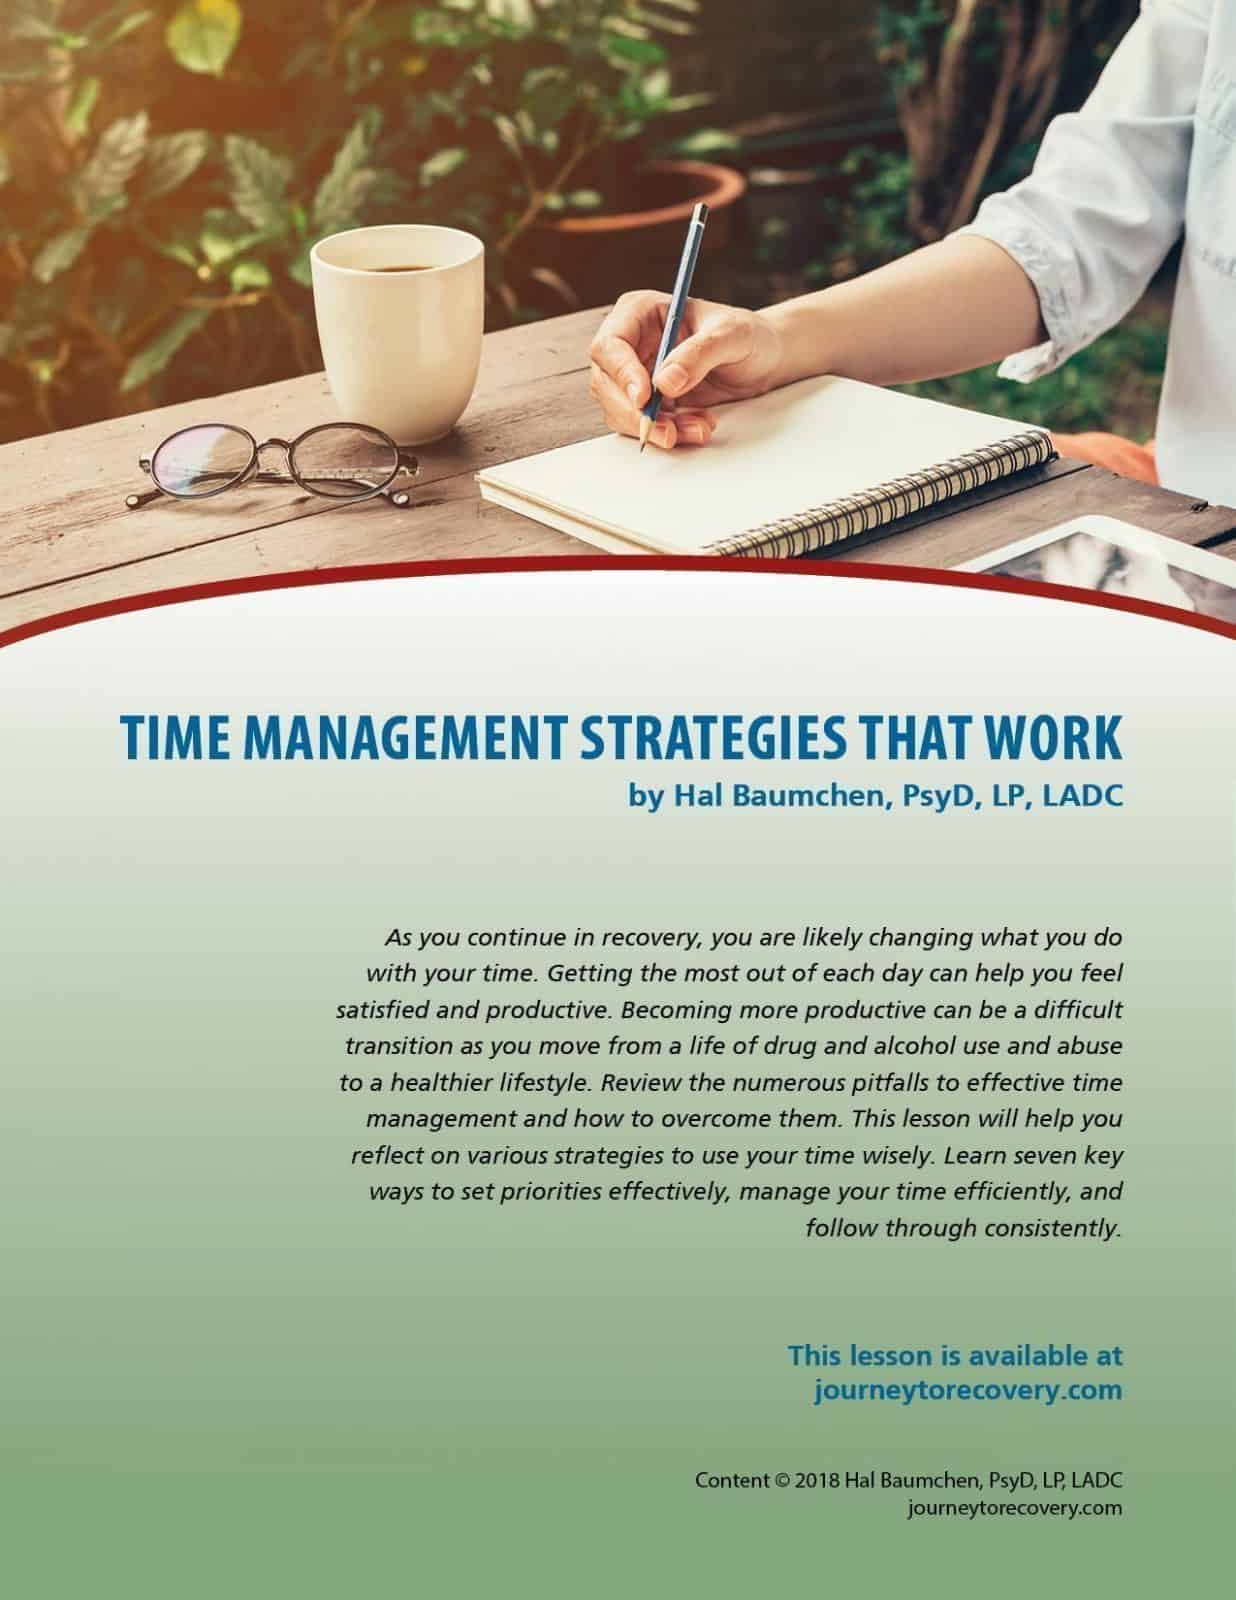 Time Management Strategies That Work Cod Lesson